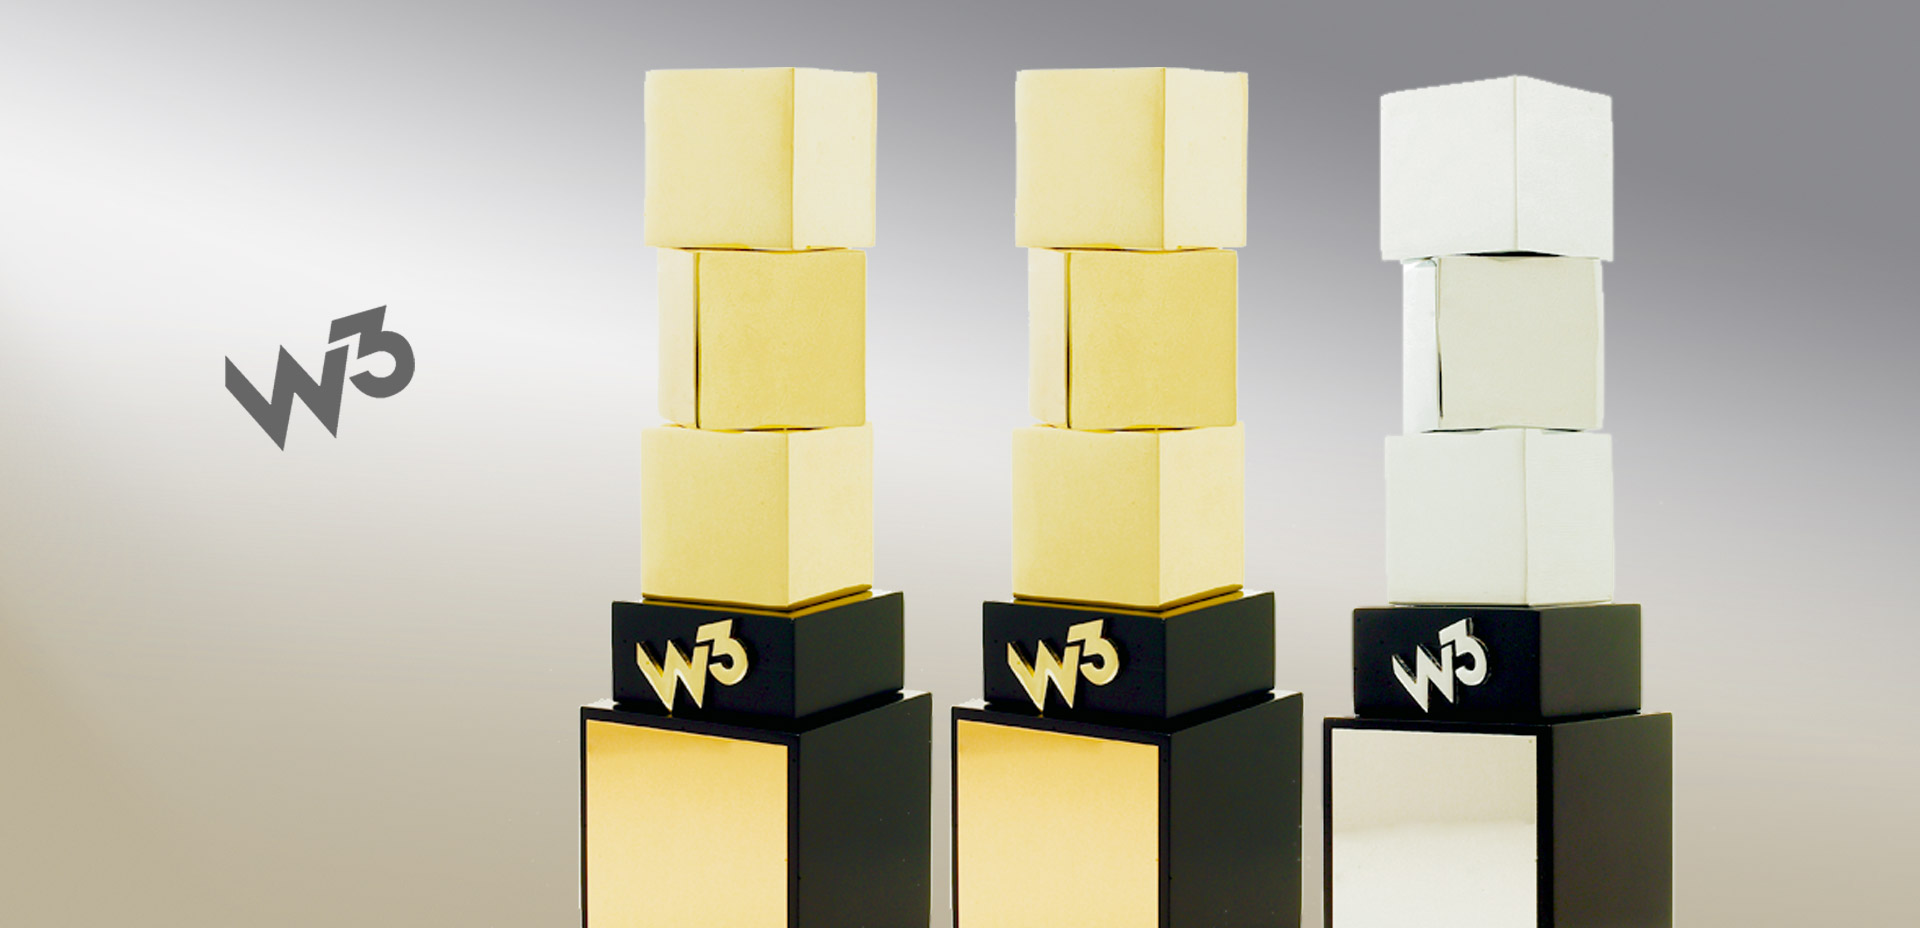 Nucleus scoops 2 Golds and a Silver at the W3 Awards in New York